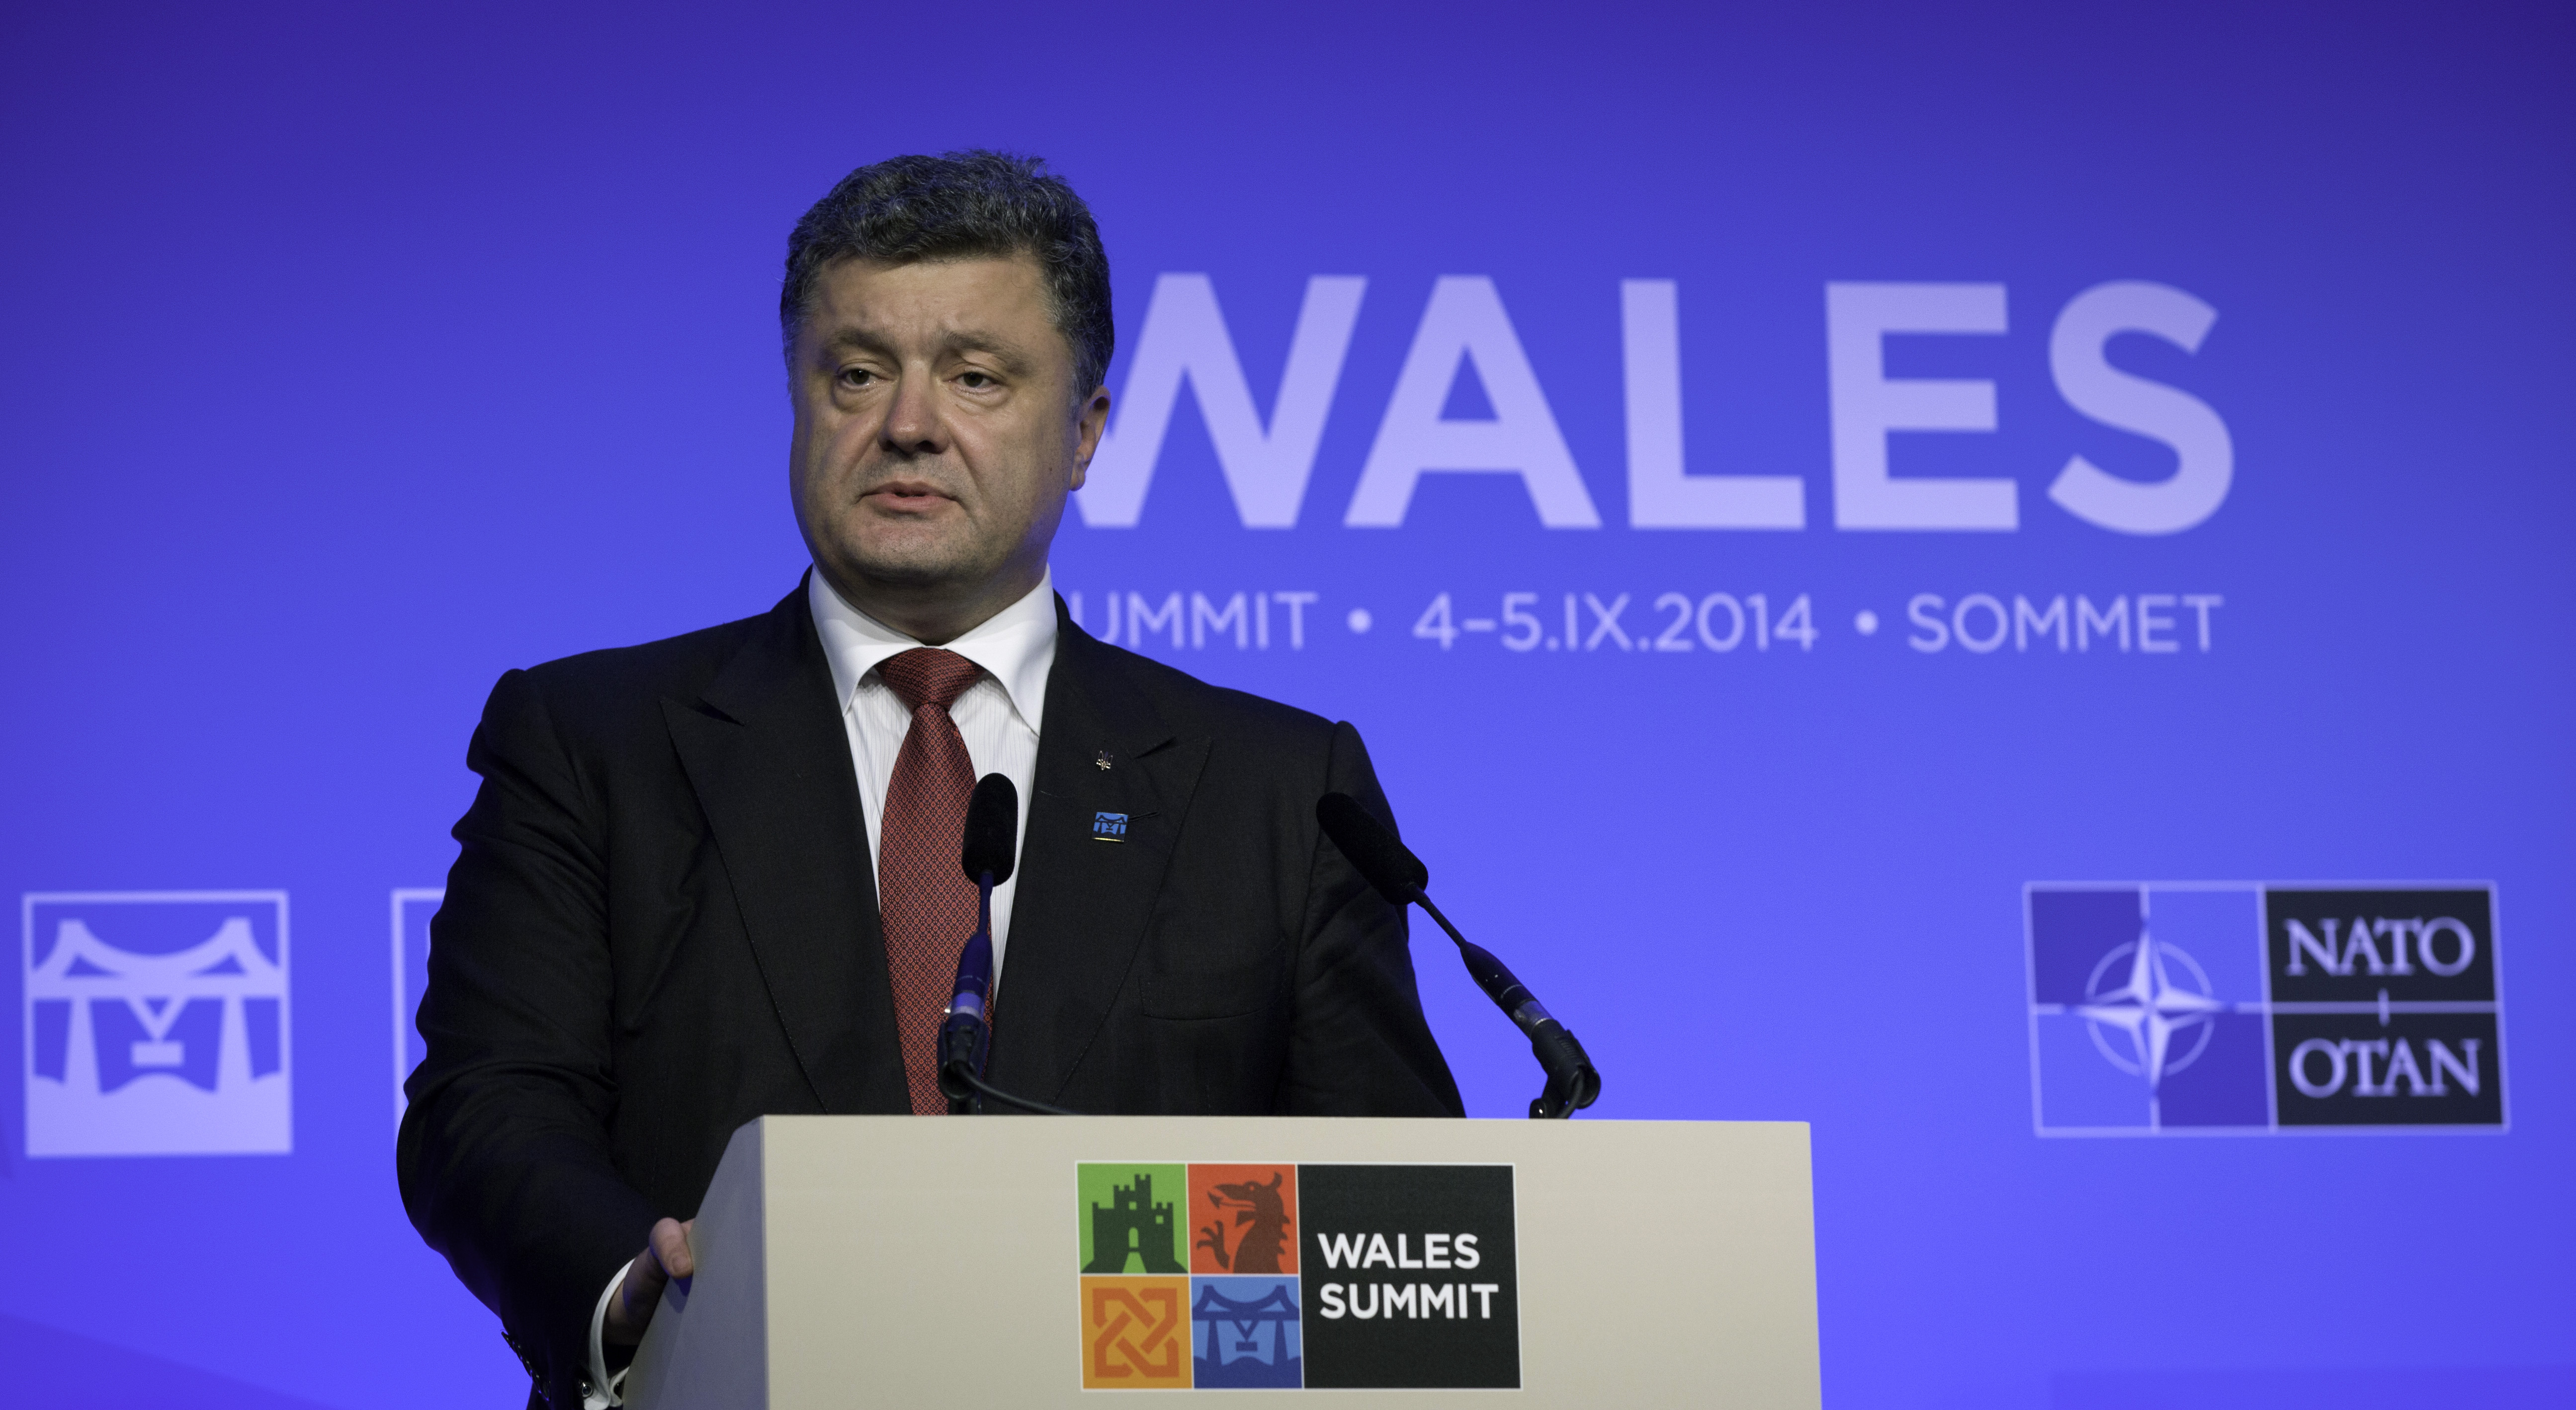 Ukrainian President Petro Poroshenko speaks during a media conference during a NATO summit at the Celtic Manor Resort in Newport, Wales on Thursday, Sept. 4, 2014.